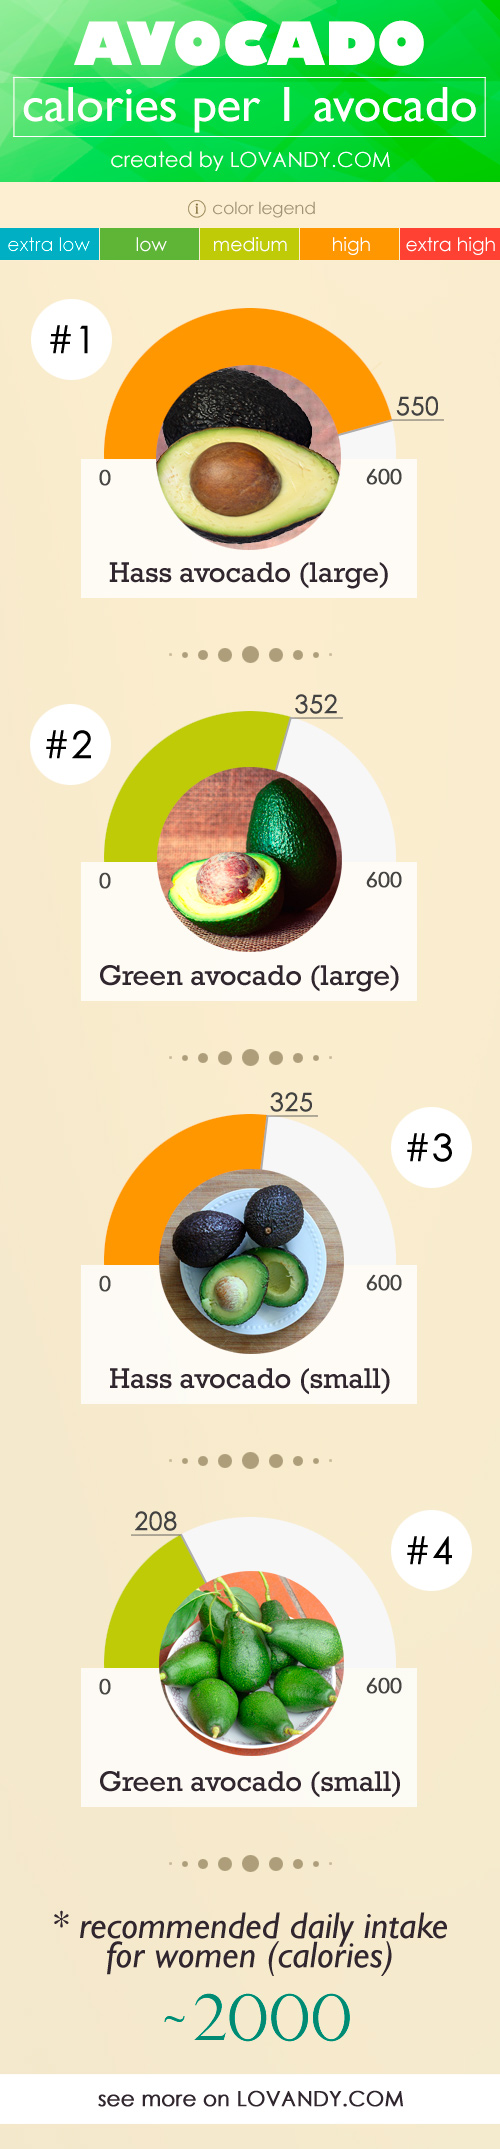 calories in hass avocado vs green one